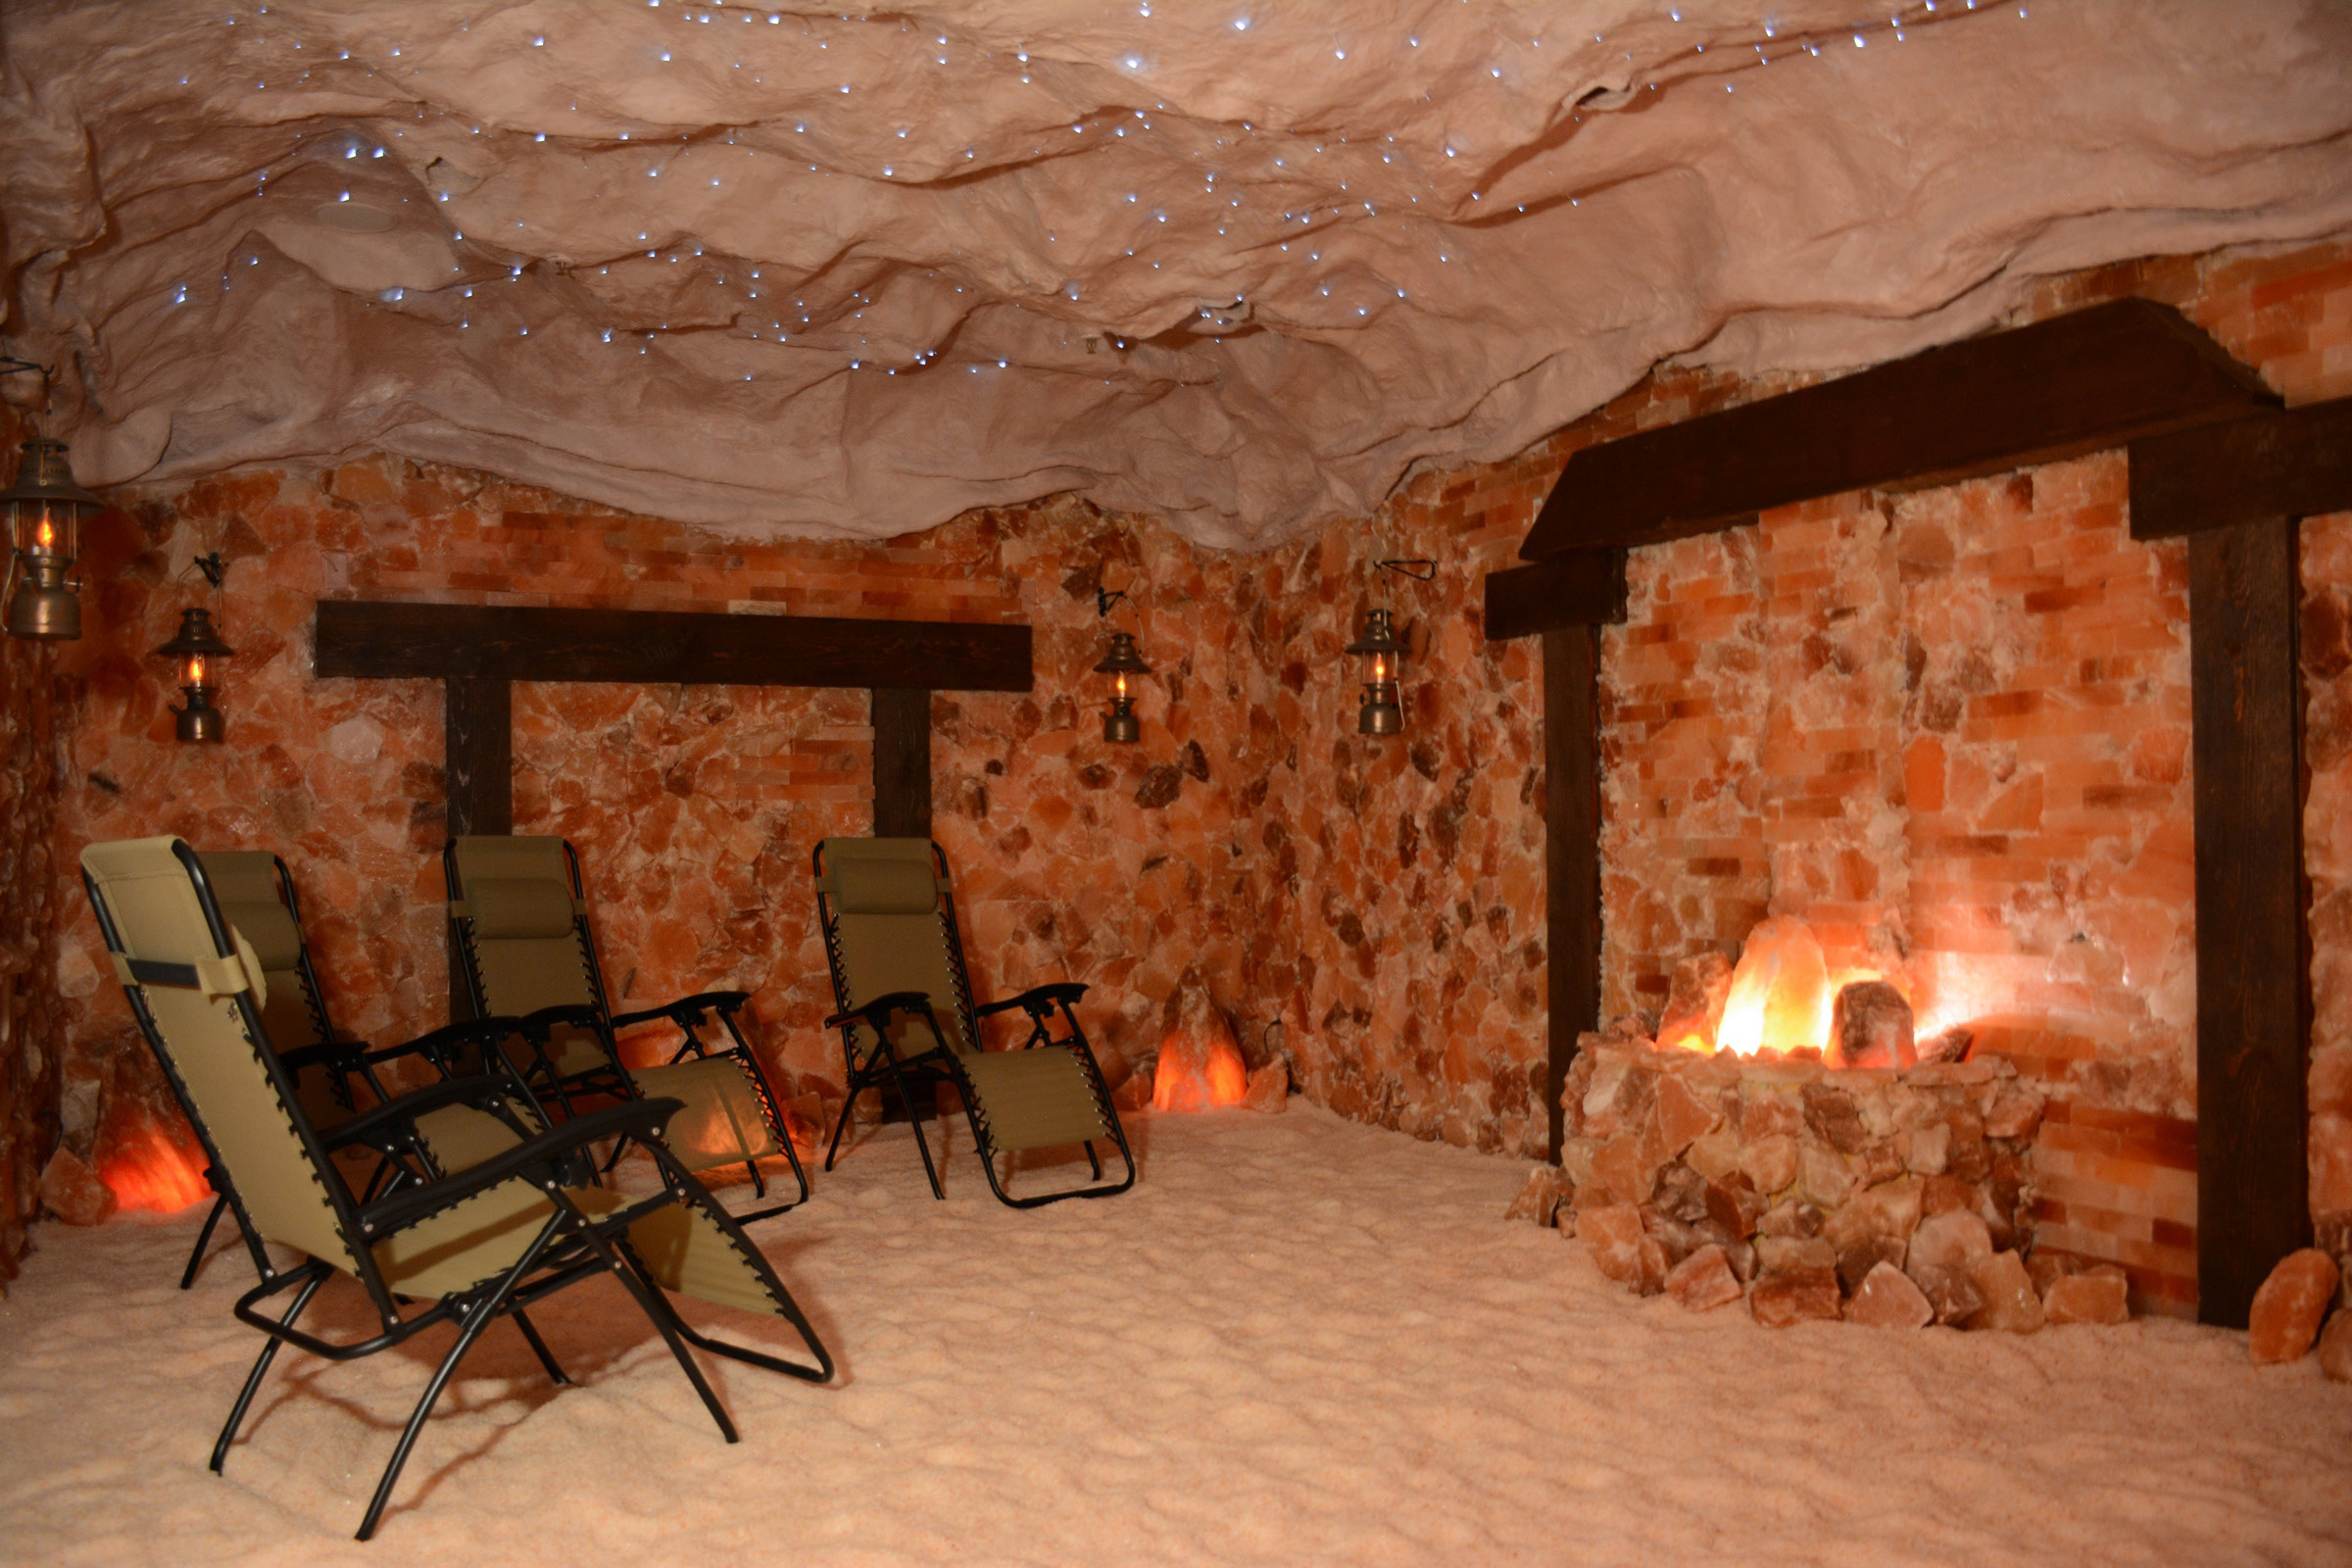 Salt therapy good for respiratory, skin conditions - The Ege Eye